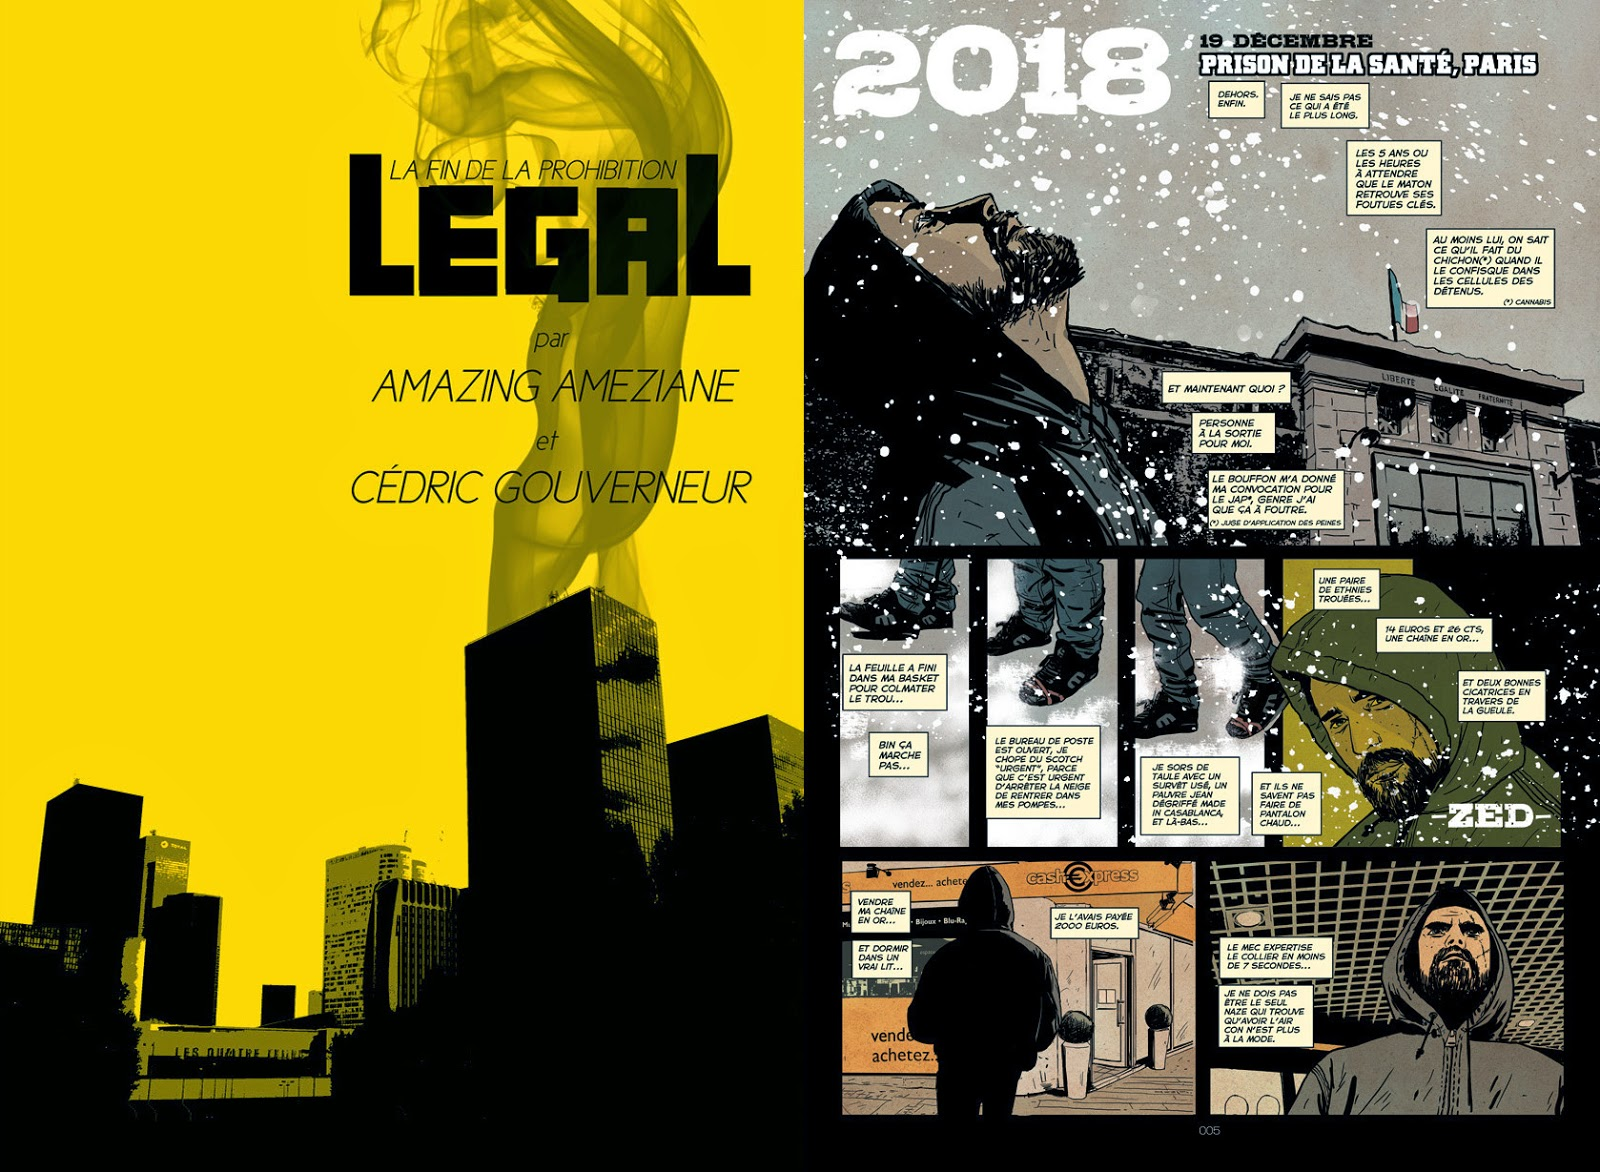 LEGAL_teaser BD-02